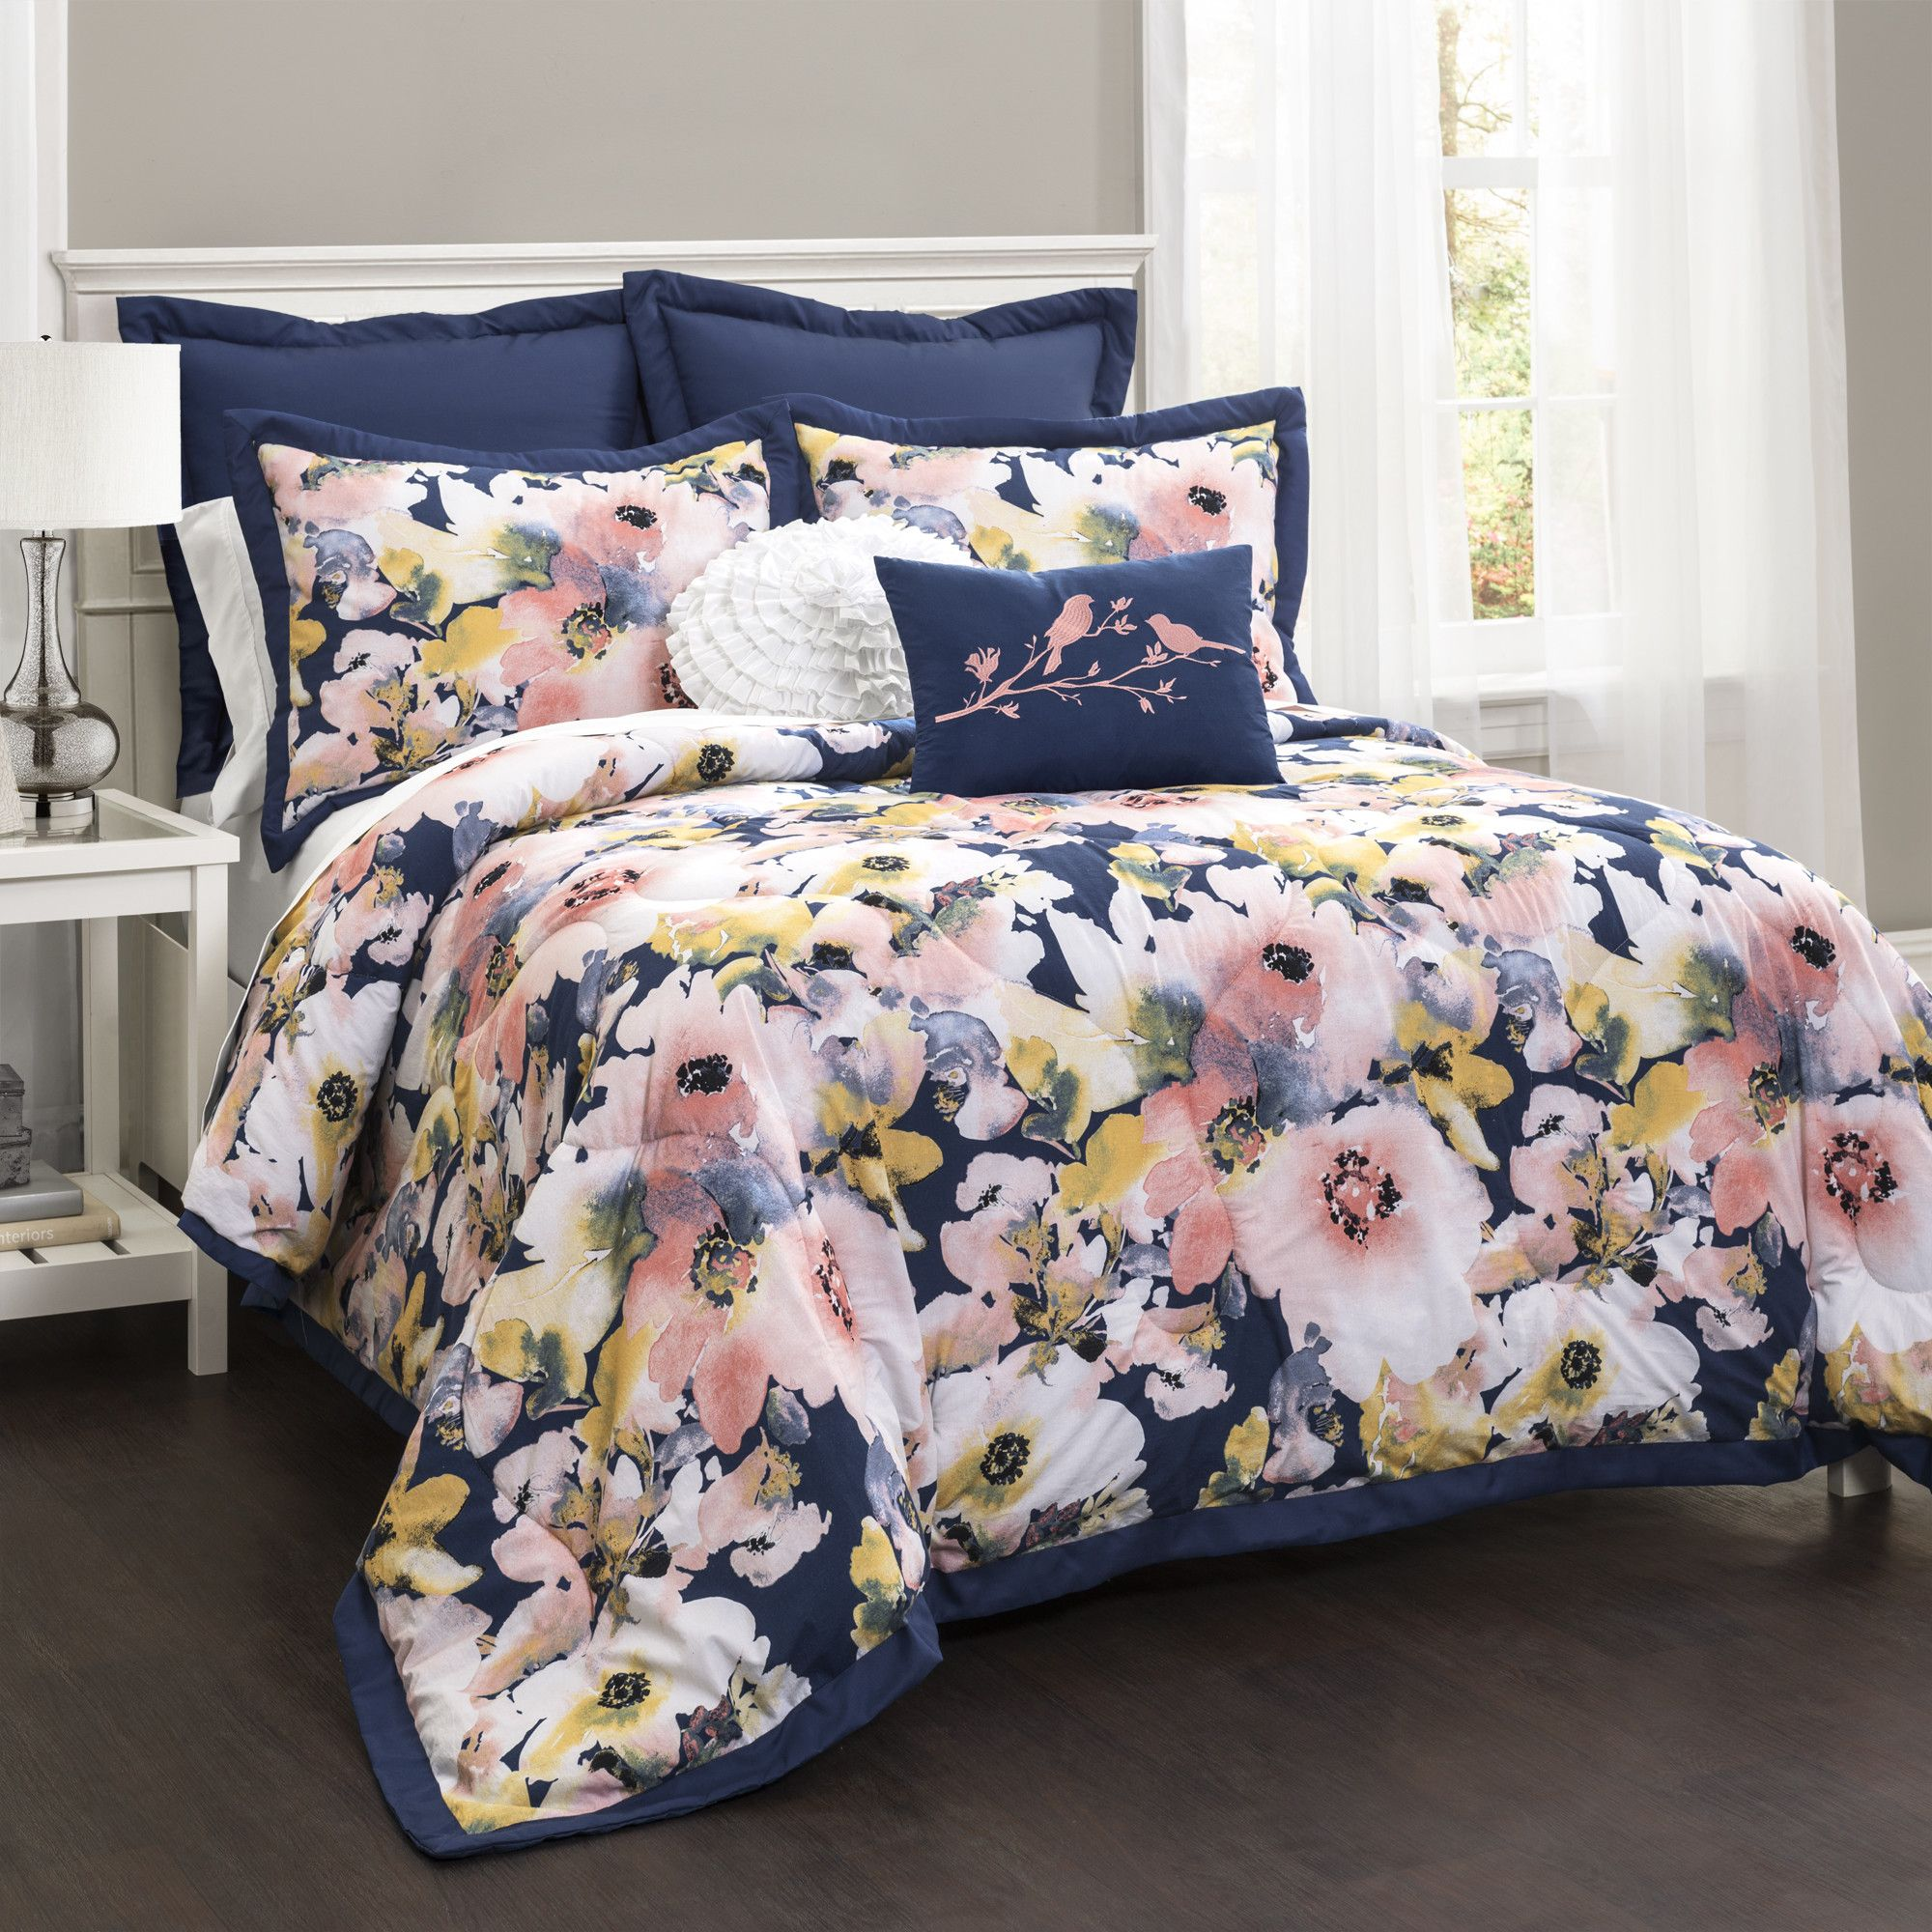 features set includes  comforter  shams  euro shams and   - features set includes  comforter  shams  euro shams and